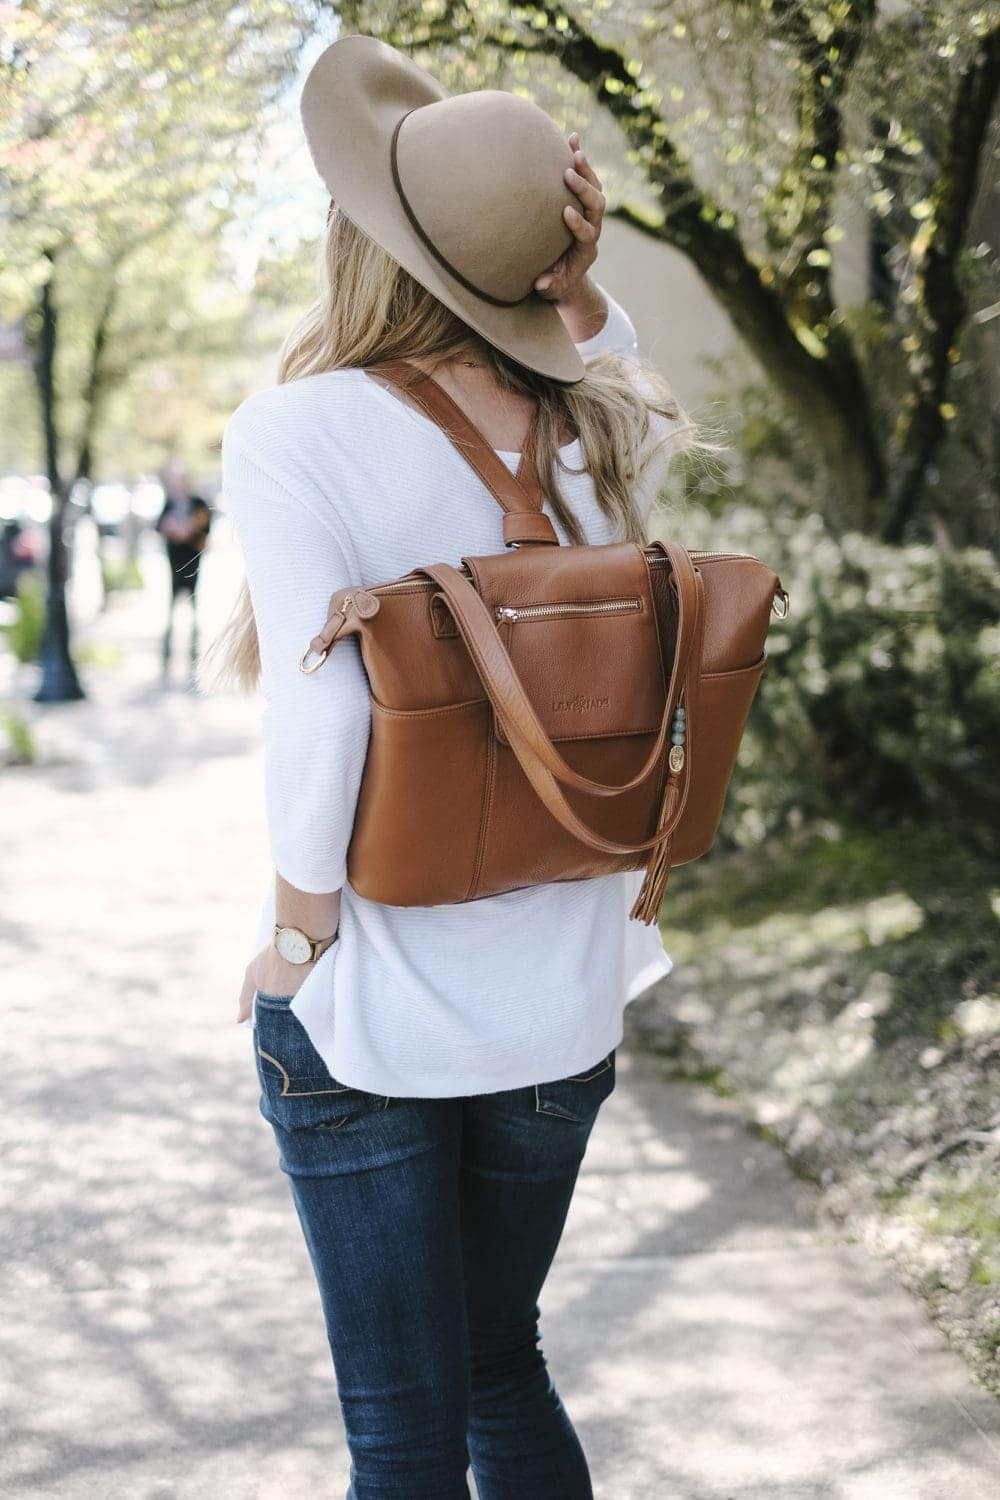 lily jade diaper bag in camel leather worn as a backpack